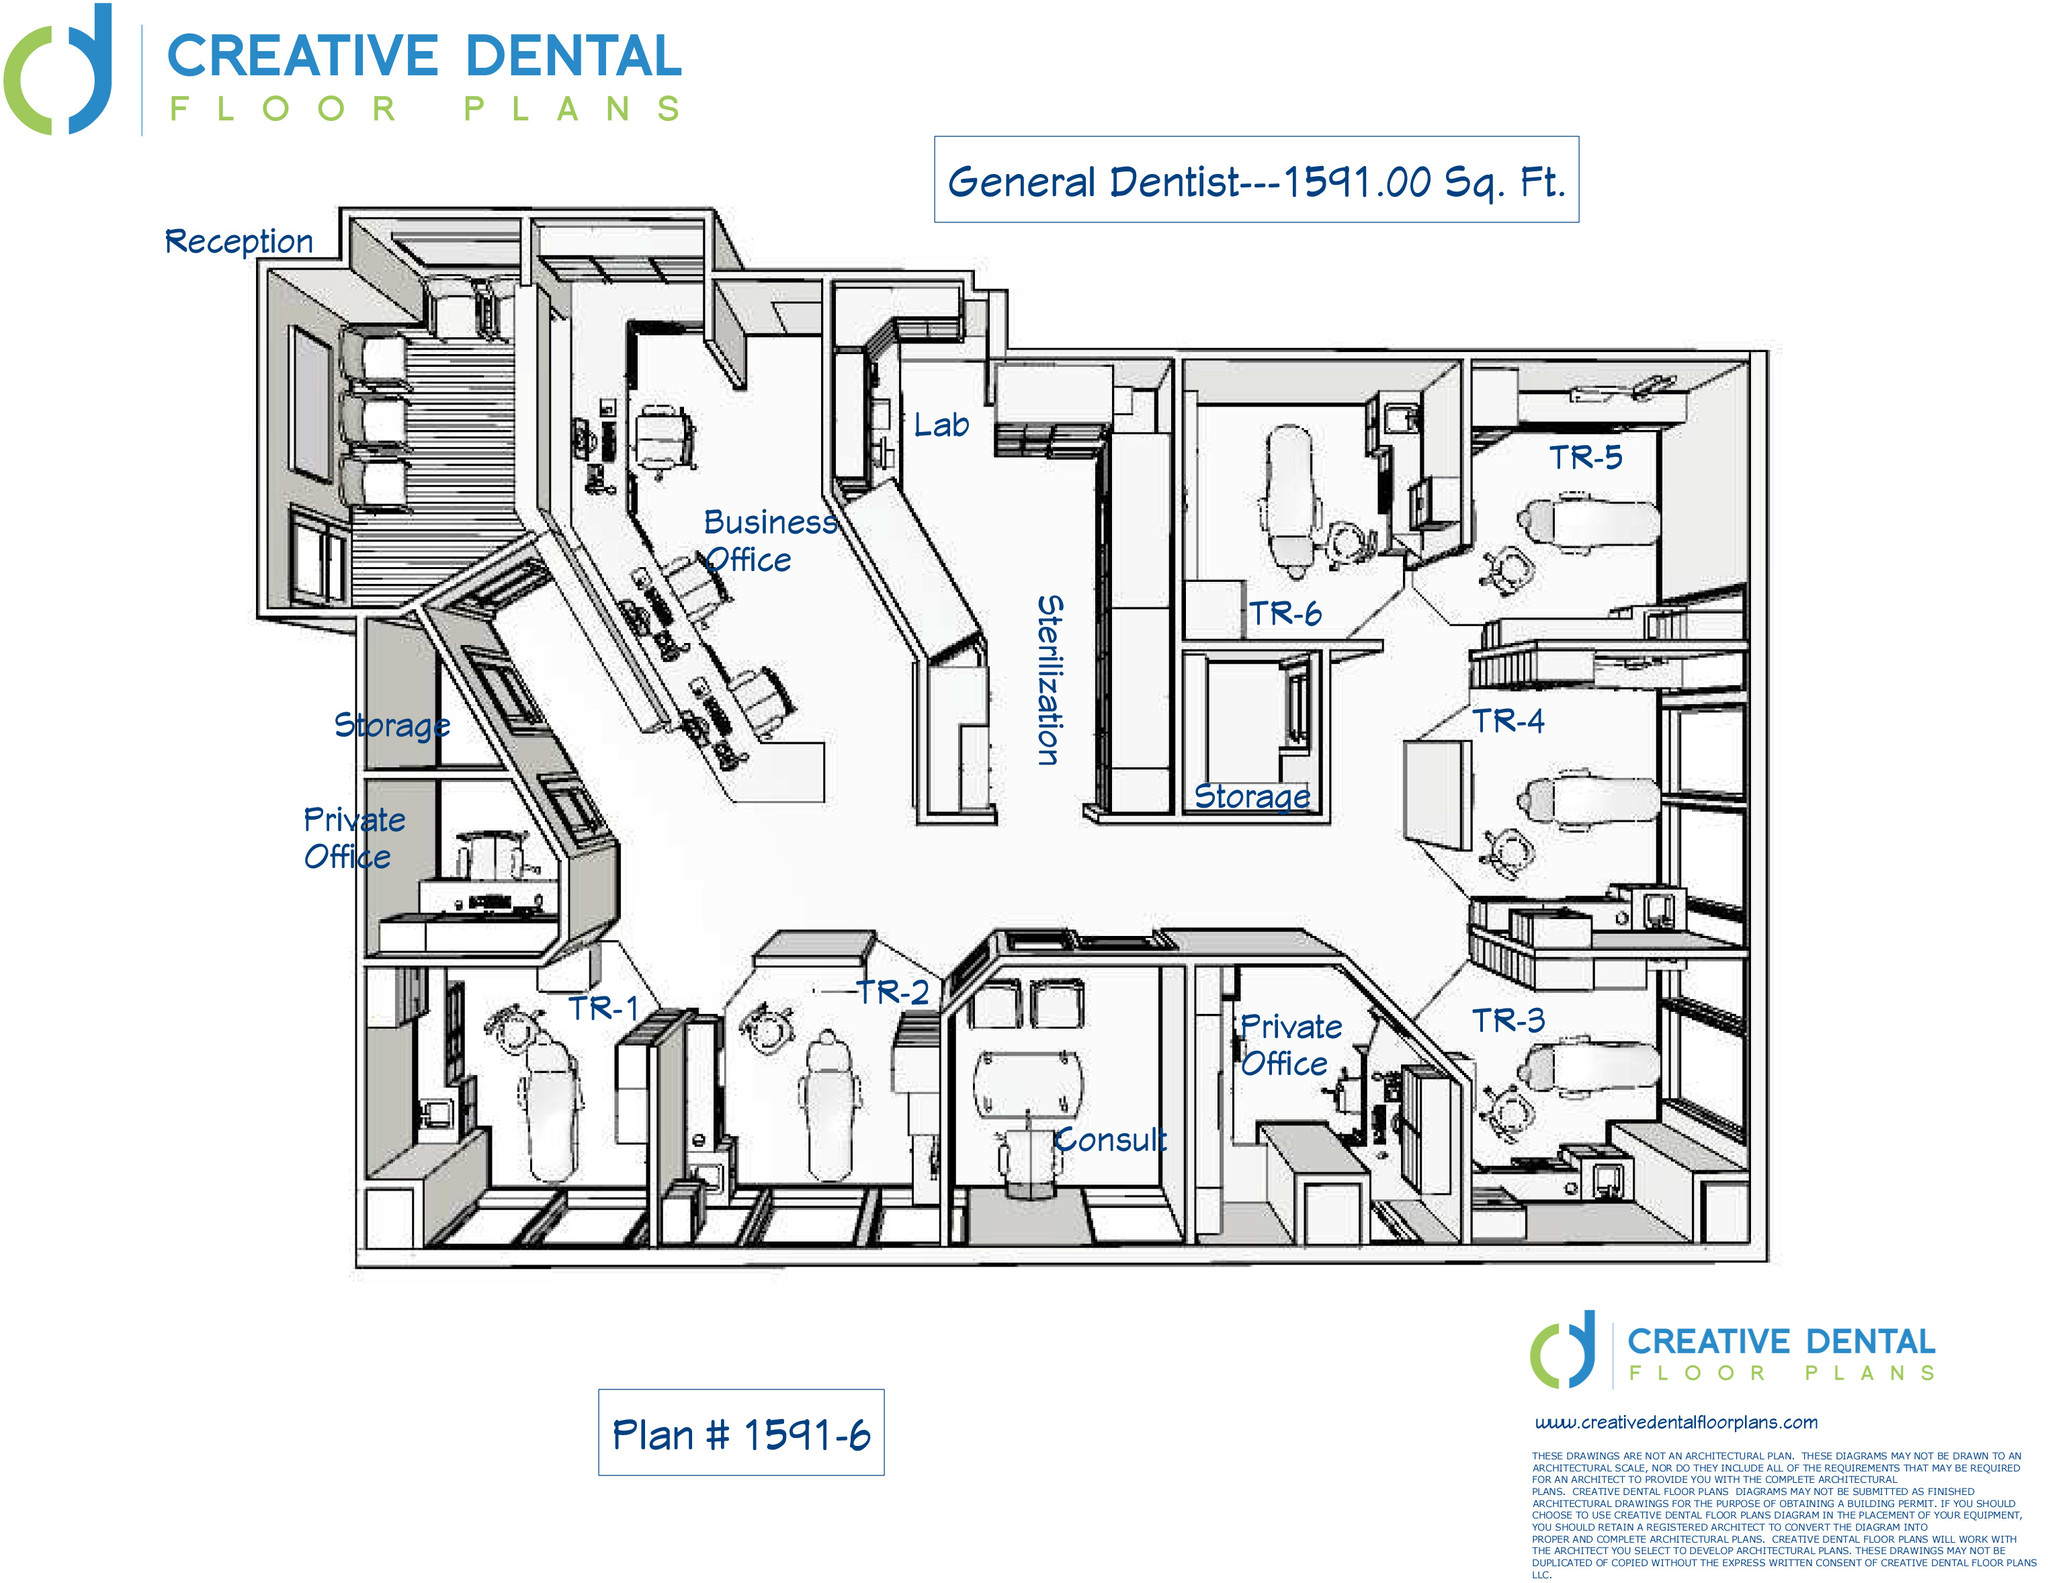 Creative dental floor plans strip mall floor plans for Design a building